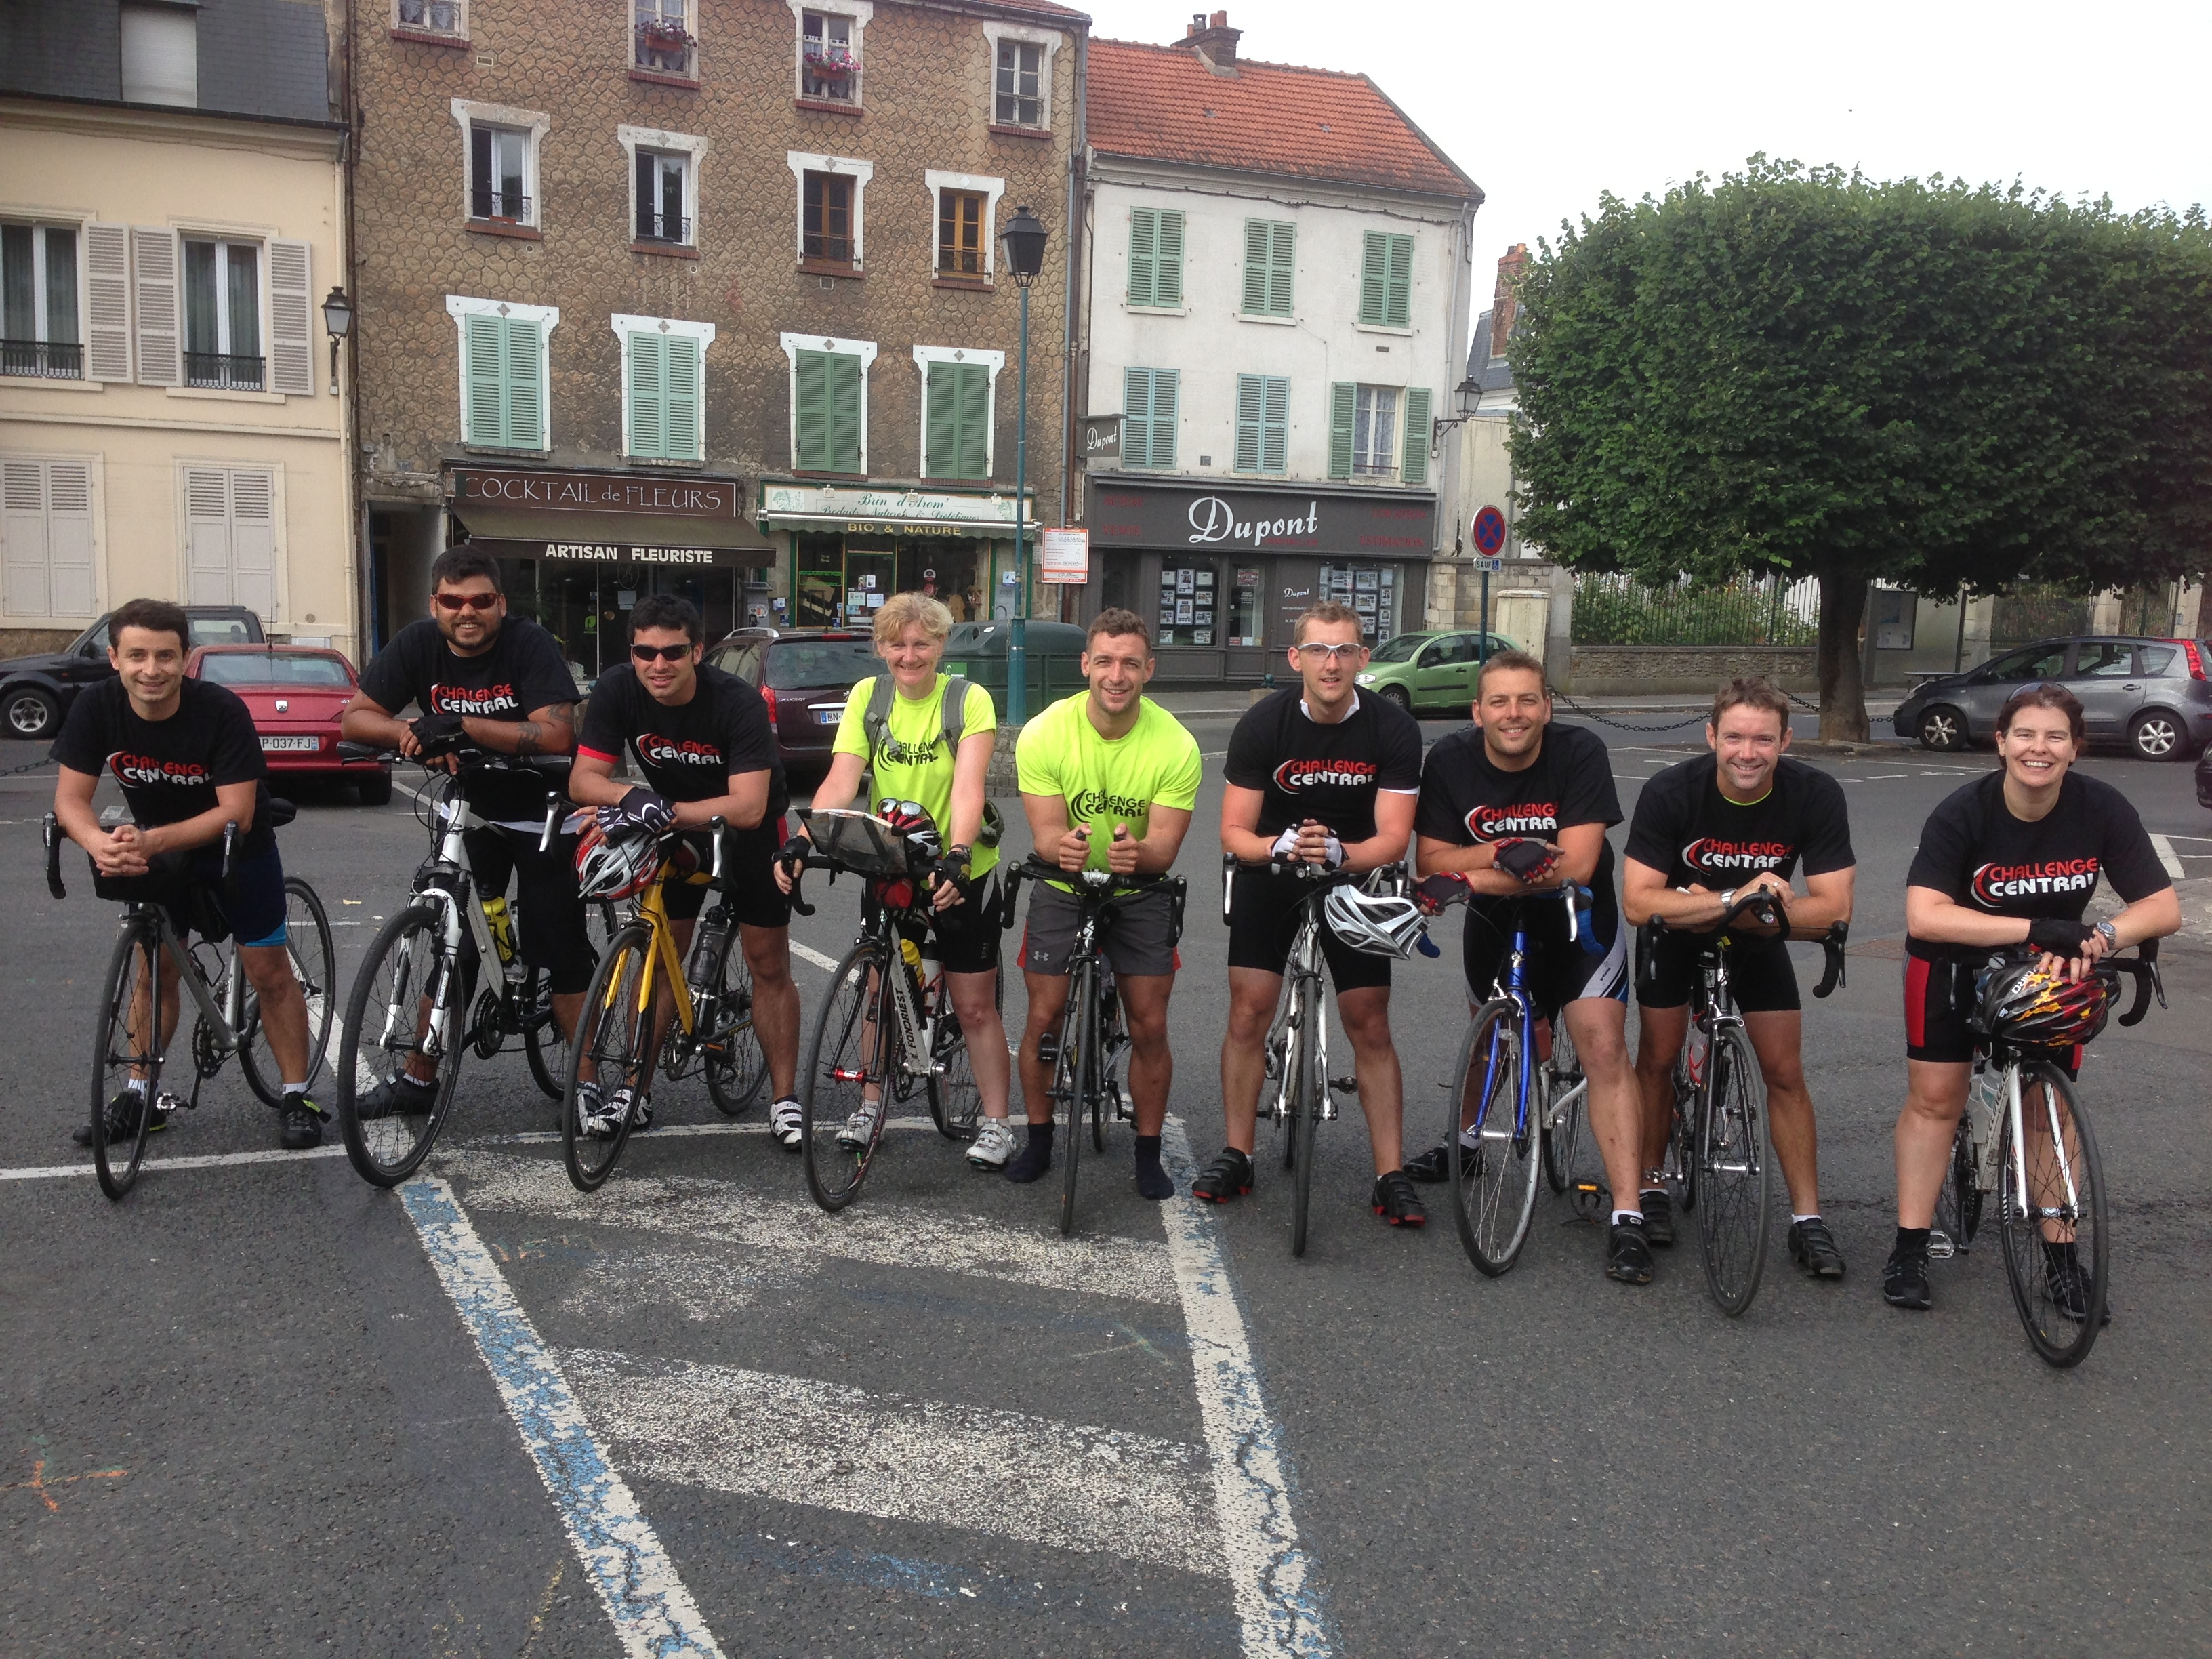 Participants on Cycle Tour